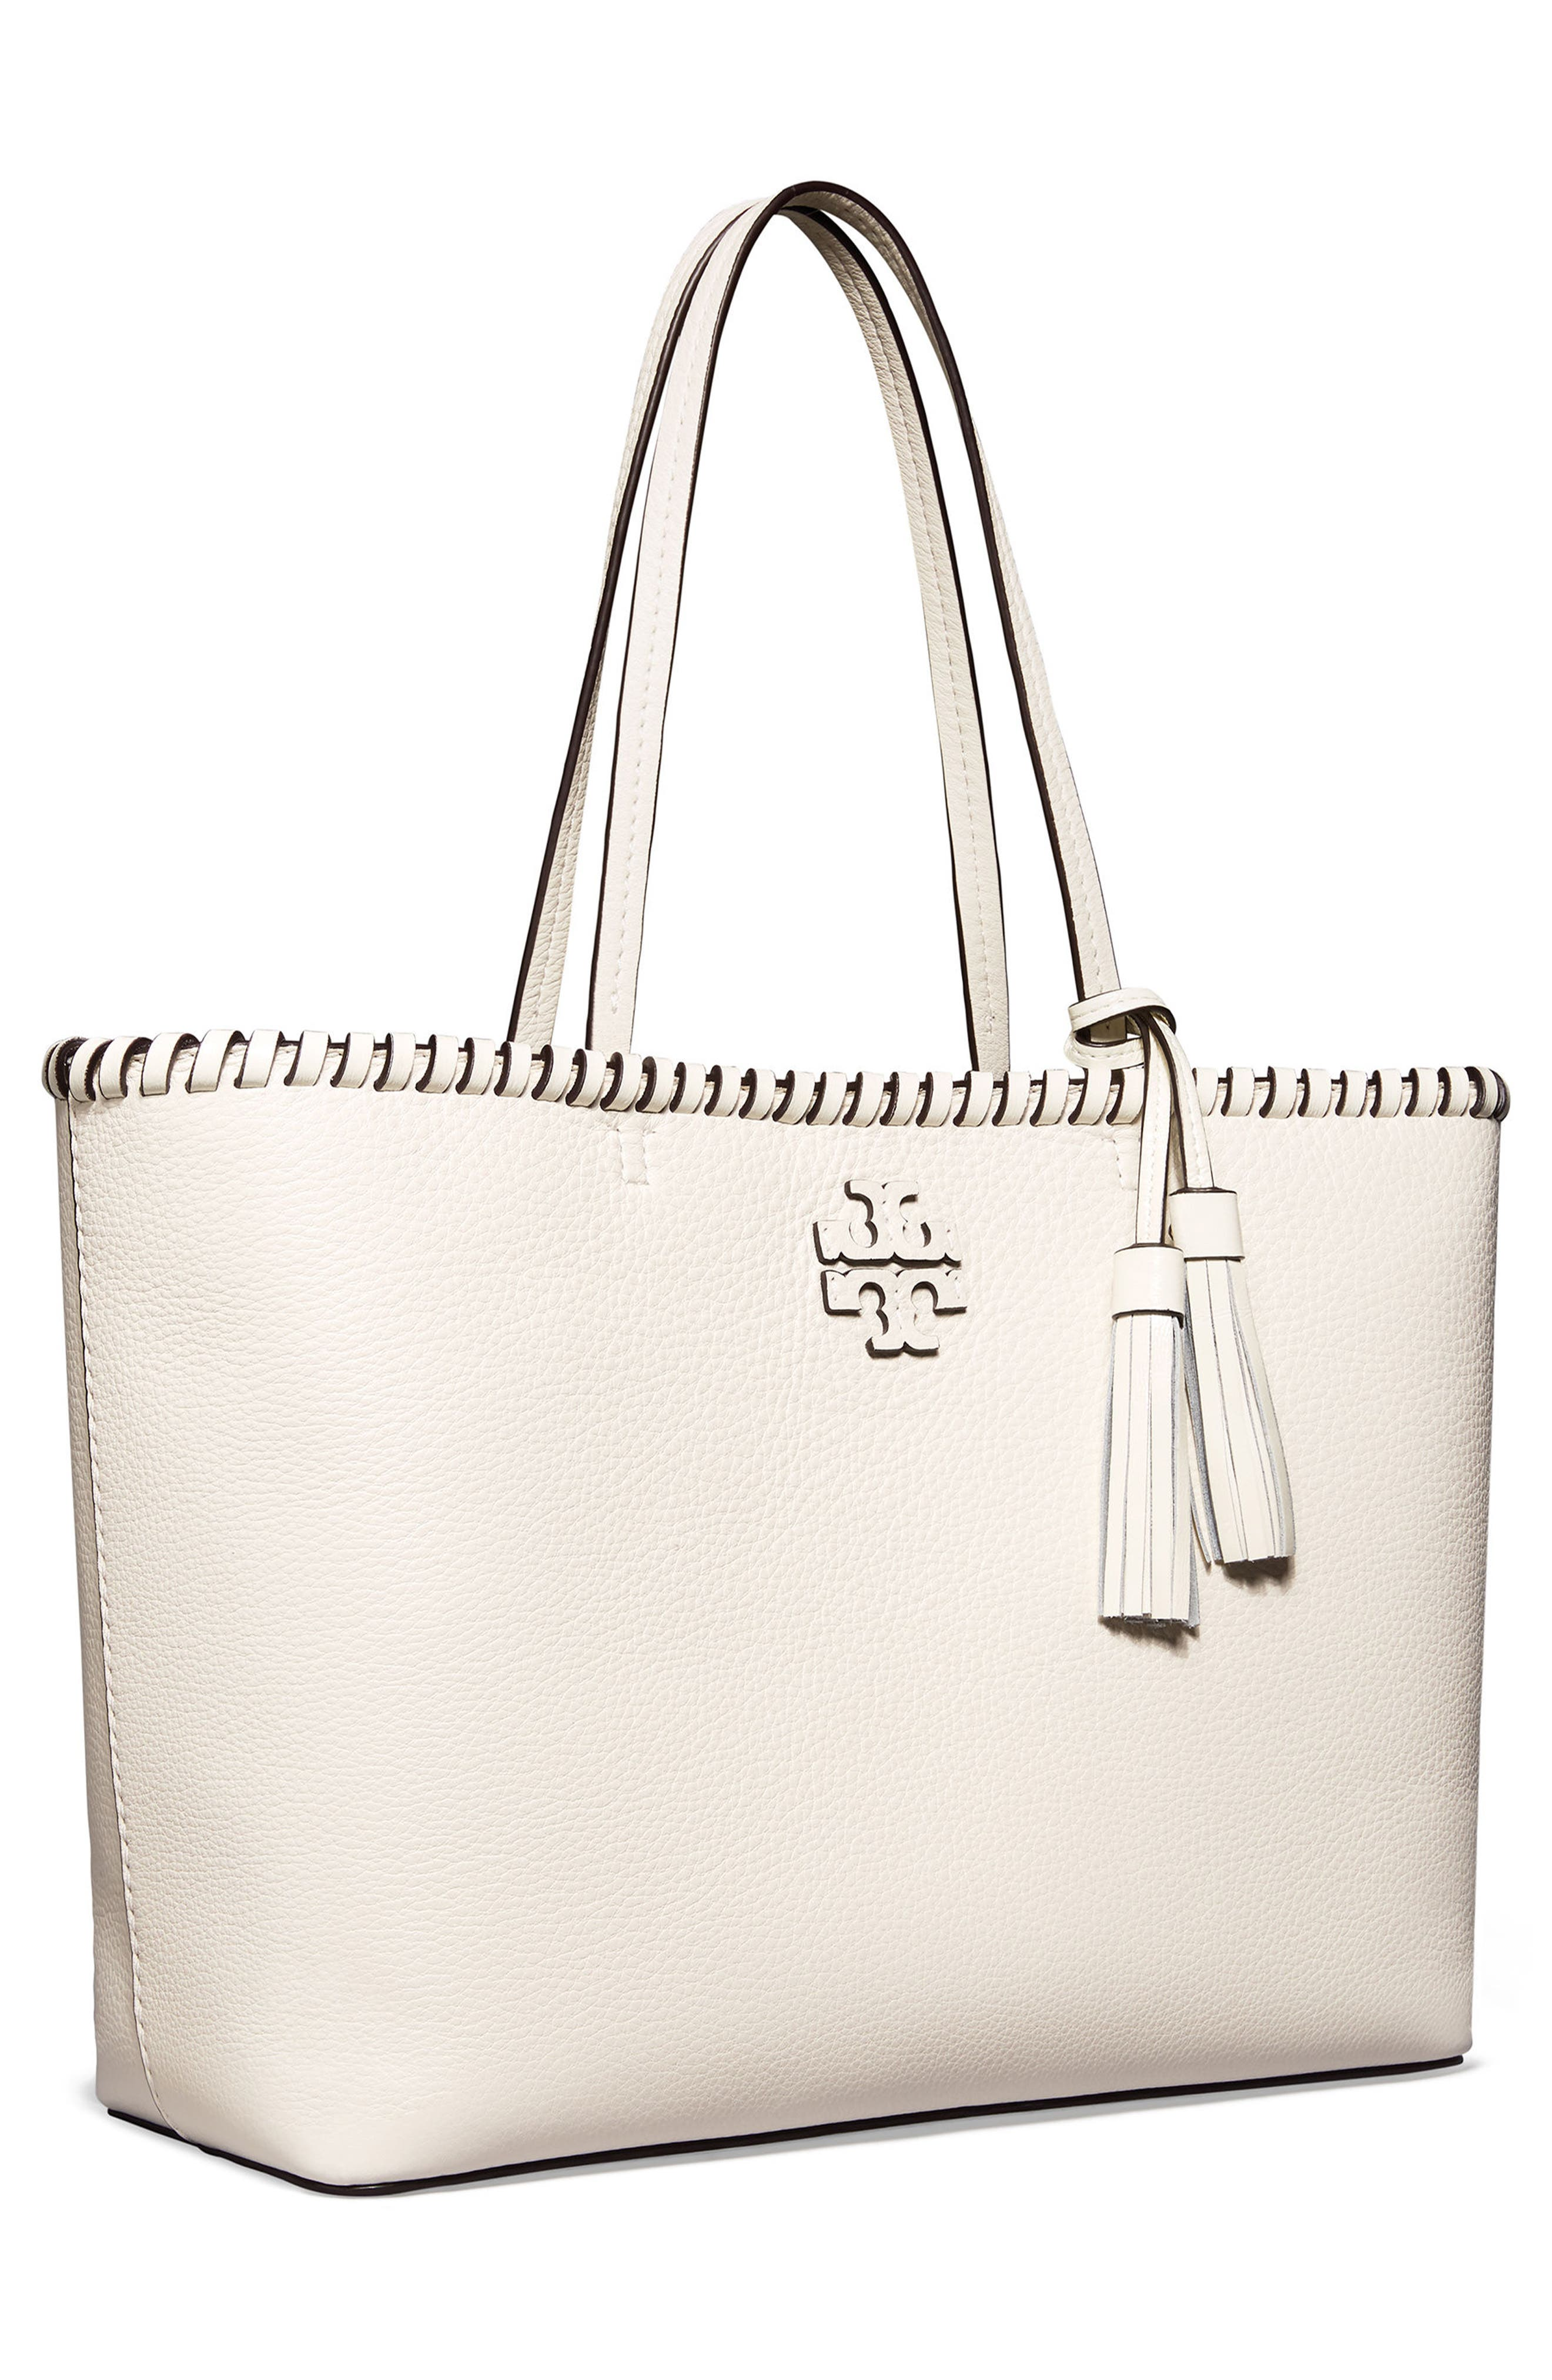 McGraw Whipstitch Leather Tote,                             Alternate thumbnail 2, color,                             New Ivory